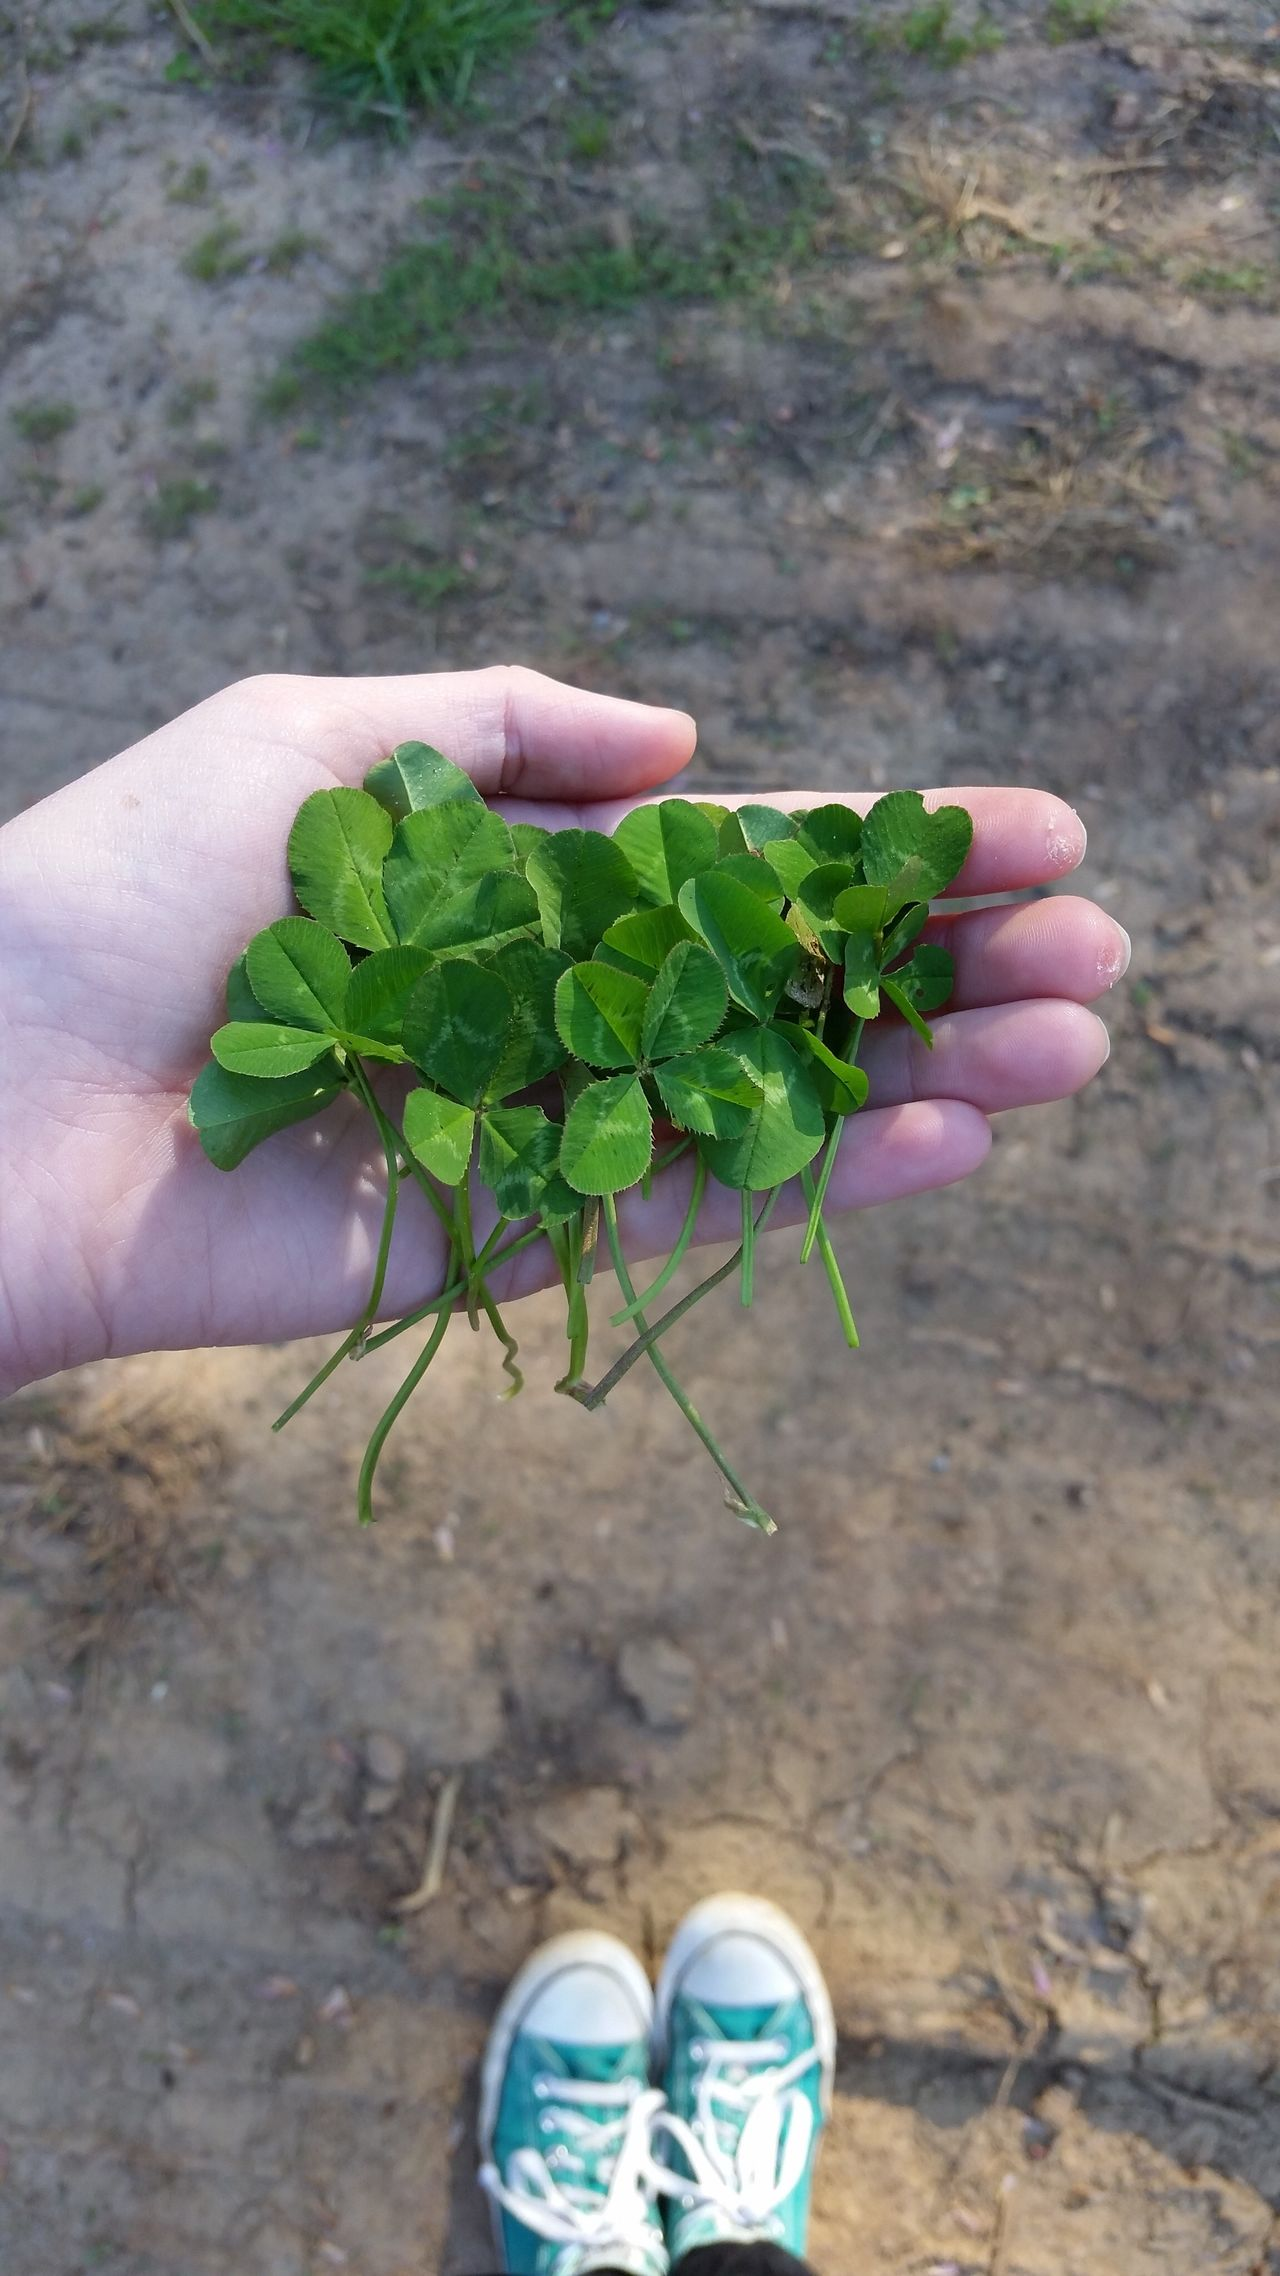 Human Hand Human Body Part One Person Focus On Foreground Growth Plant Unrecognizable Person Real People Leaf Close-up Personal Perspective Food Outdoors Day Lifestyles Agriculture Freshness Green Color Adults Only People Four Leaf Clover Clover